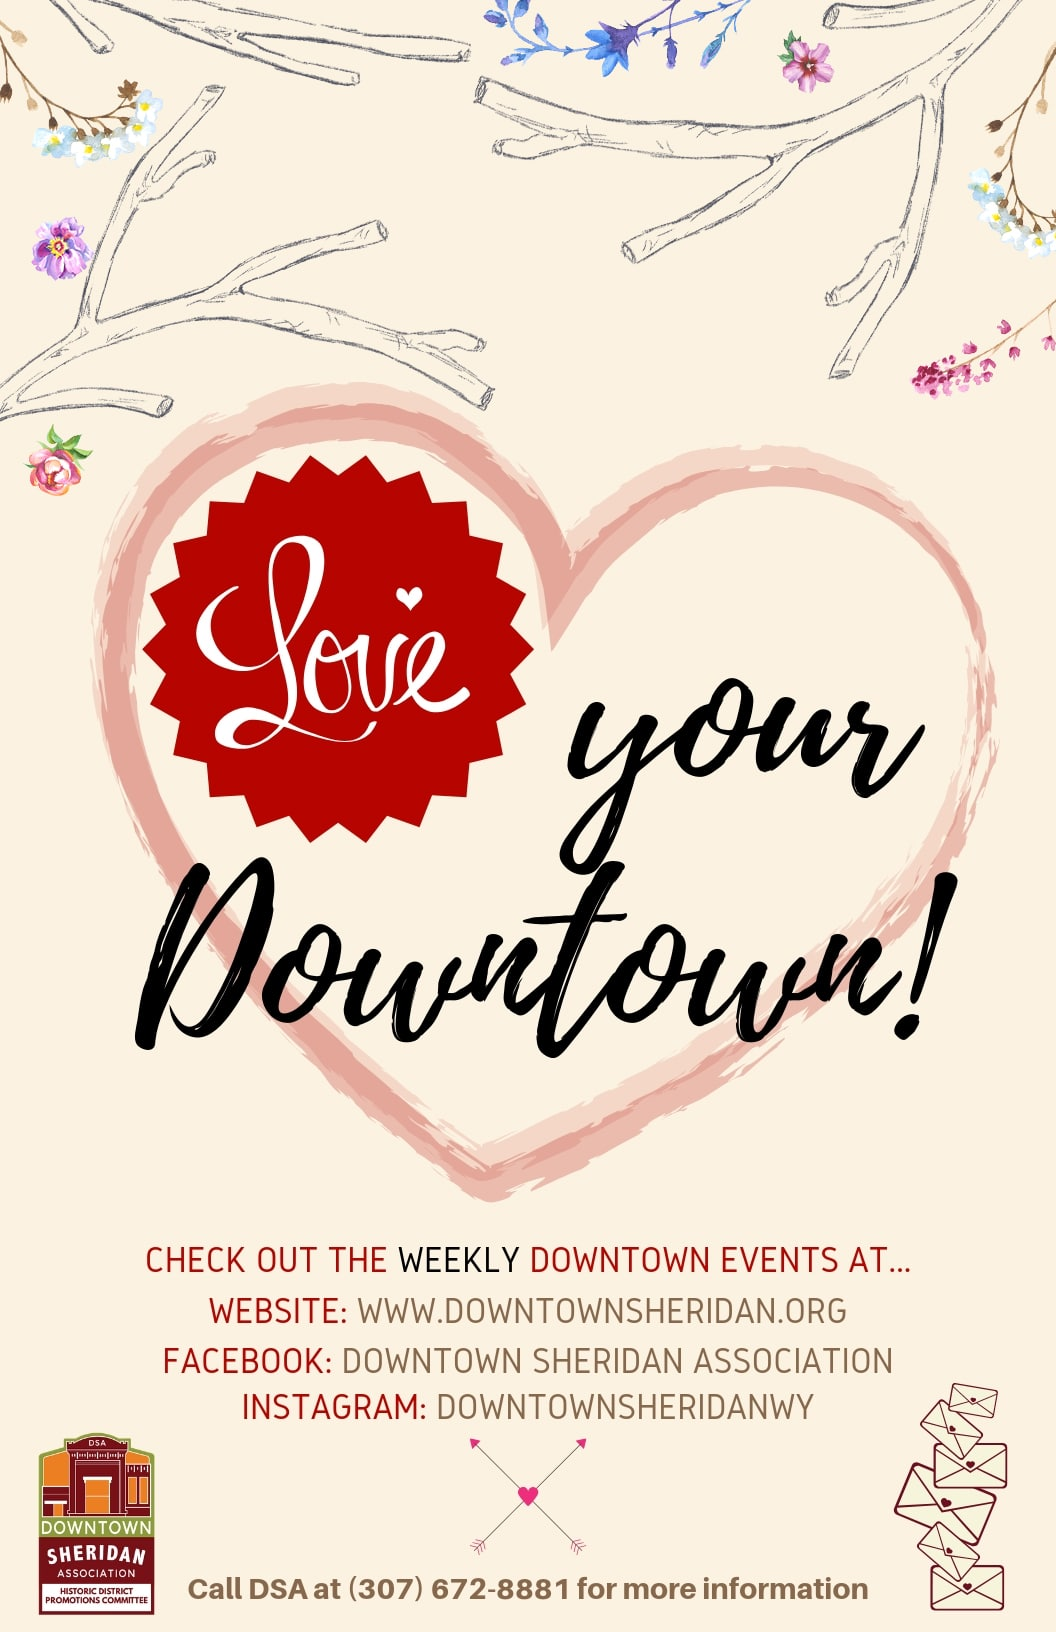 Love Your Downtown